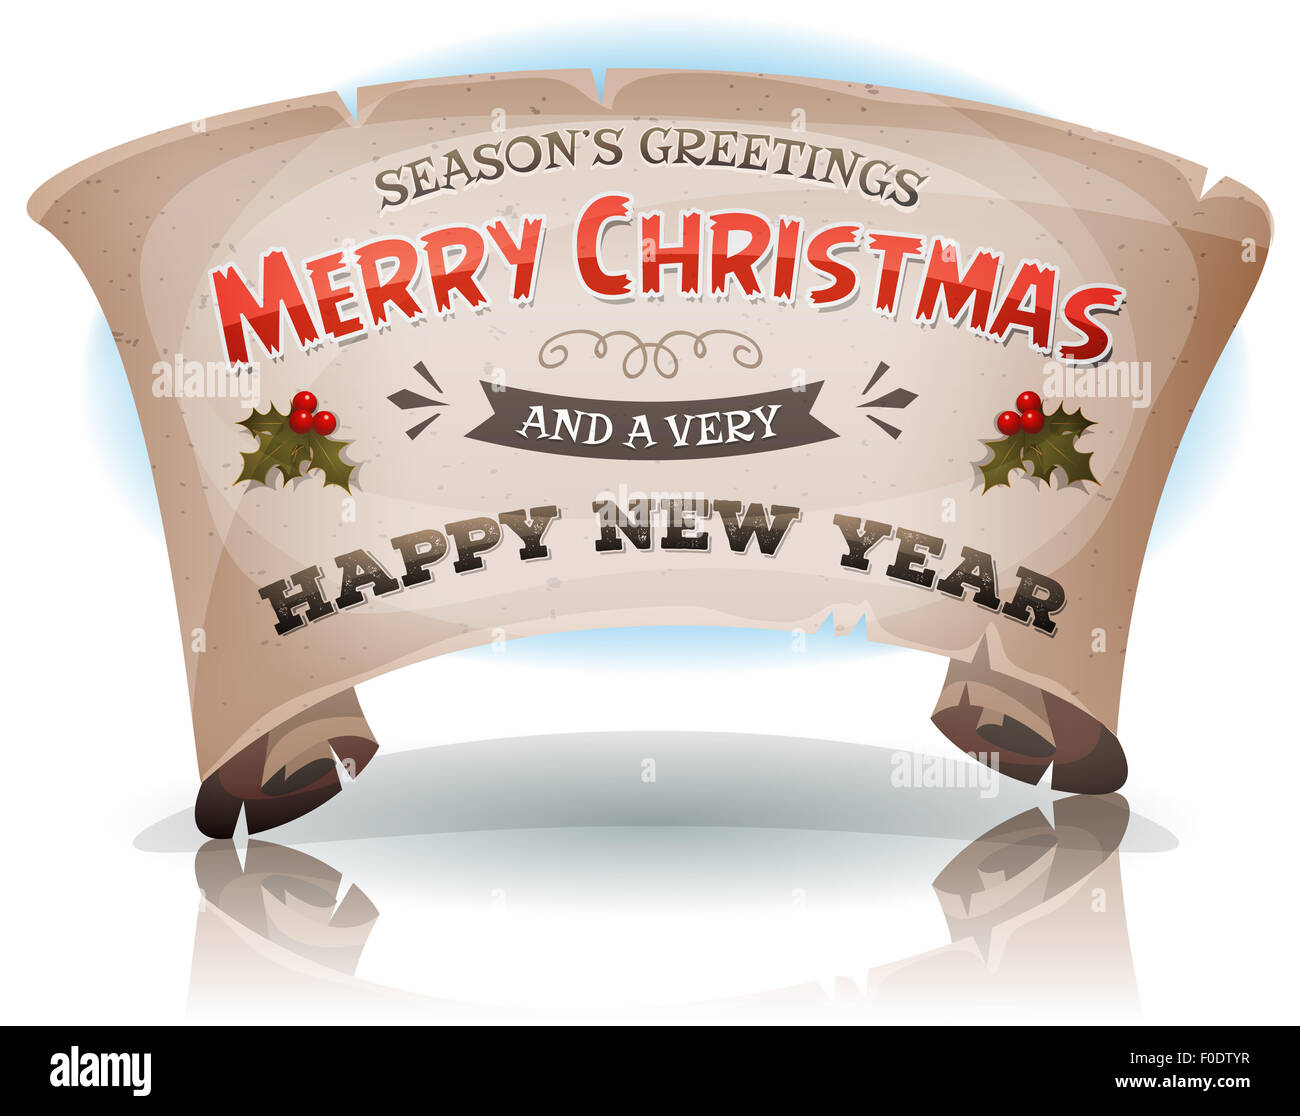 Illustration of a cartoon seasons greetings and happy new year illustration of a cartoon seasons greetings and happy new year banner on parchment scroll sign for winter holidays kristyandbryce Choice Image